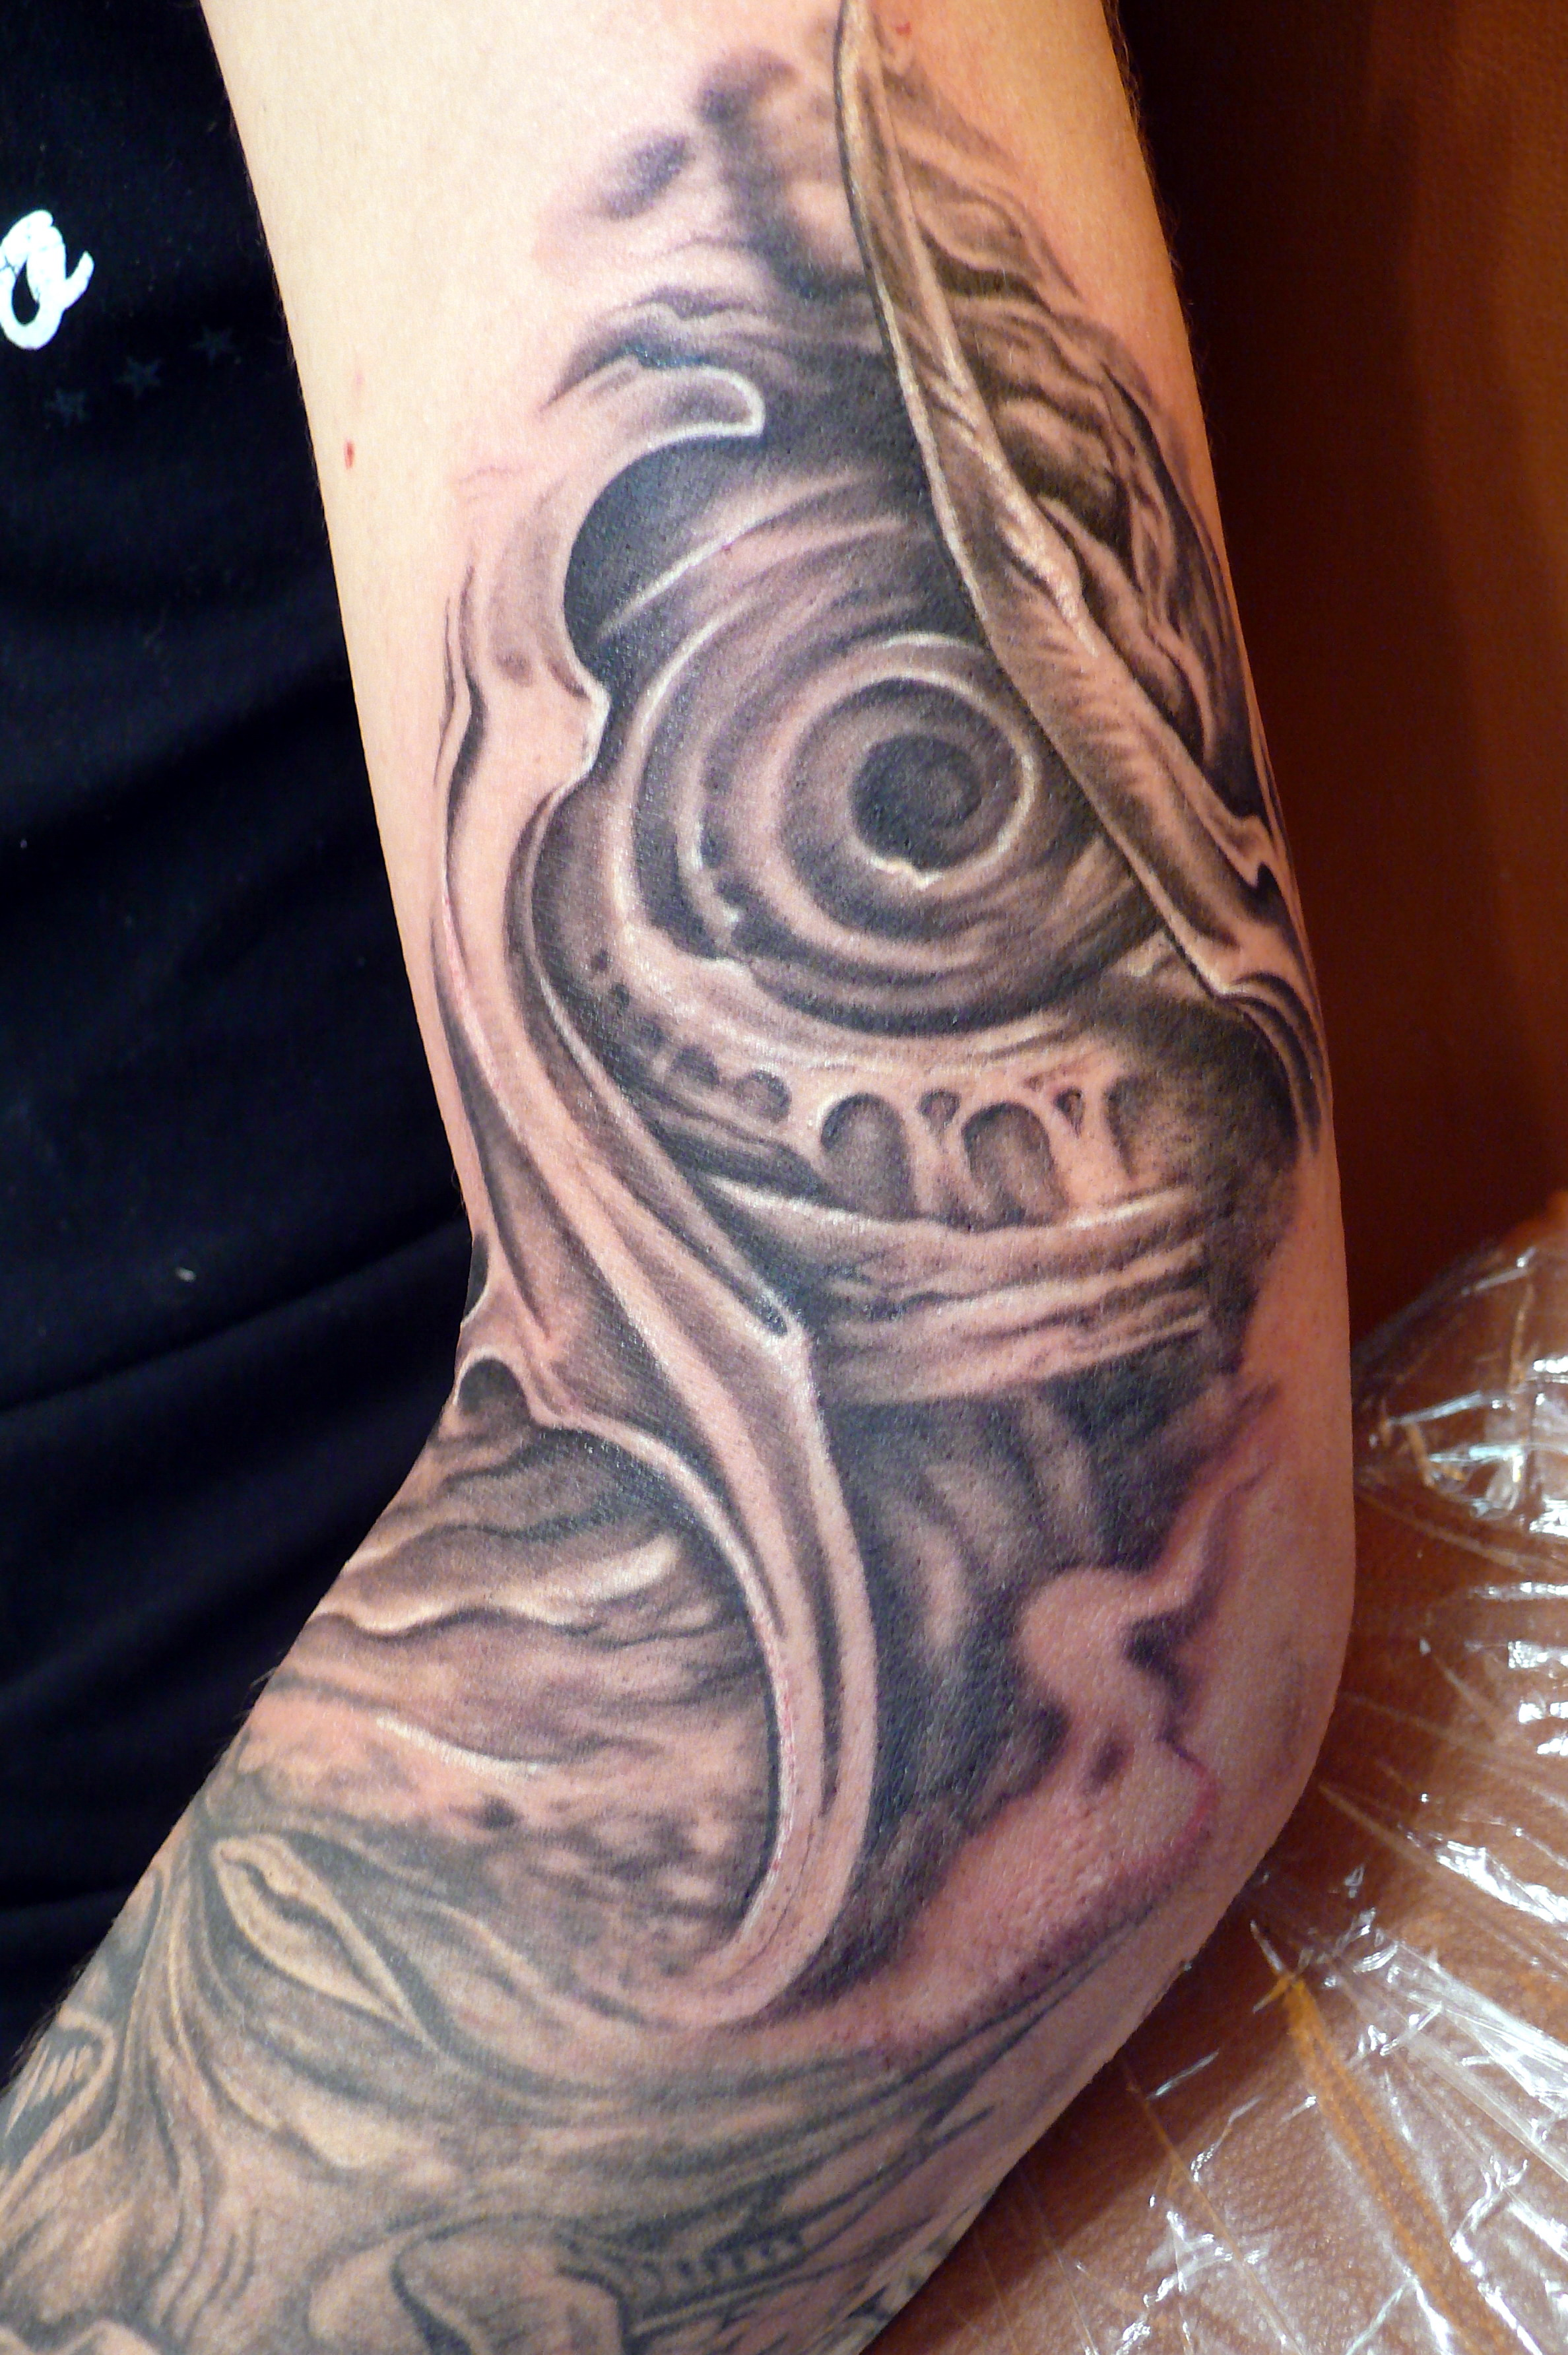 Biomechanical Alien Tattoo Design For Your Arm